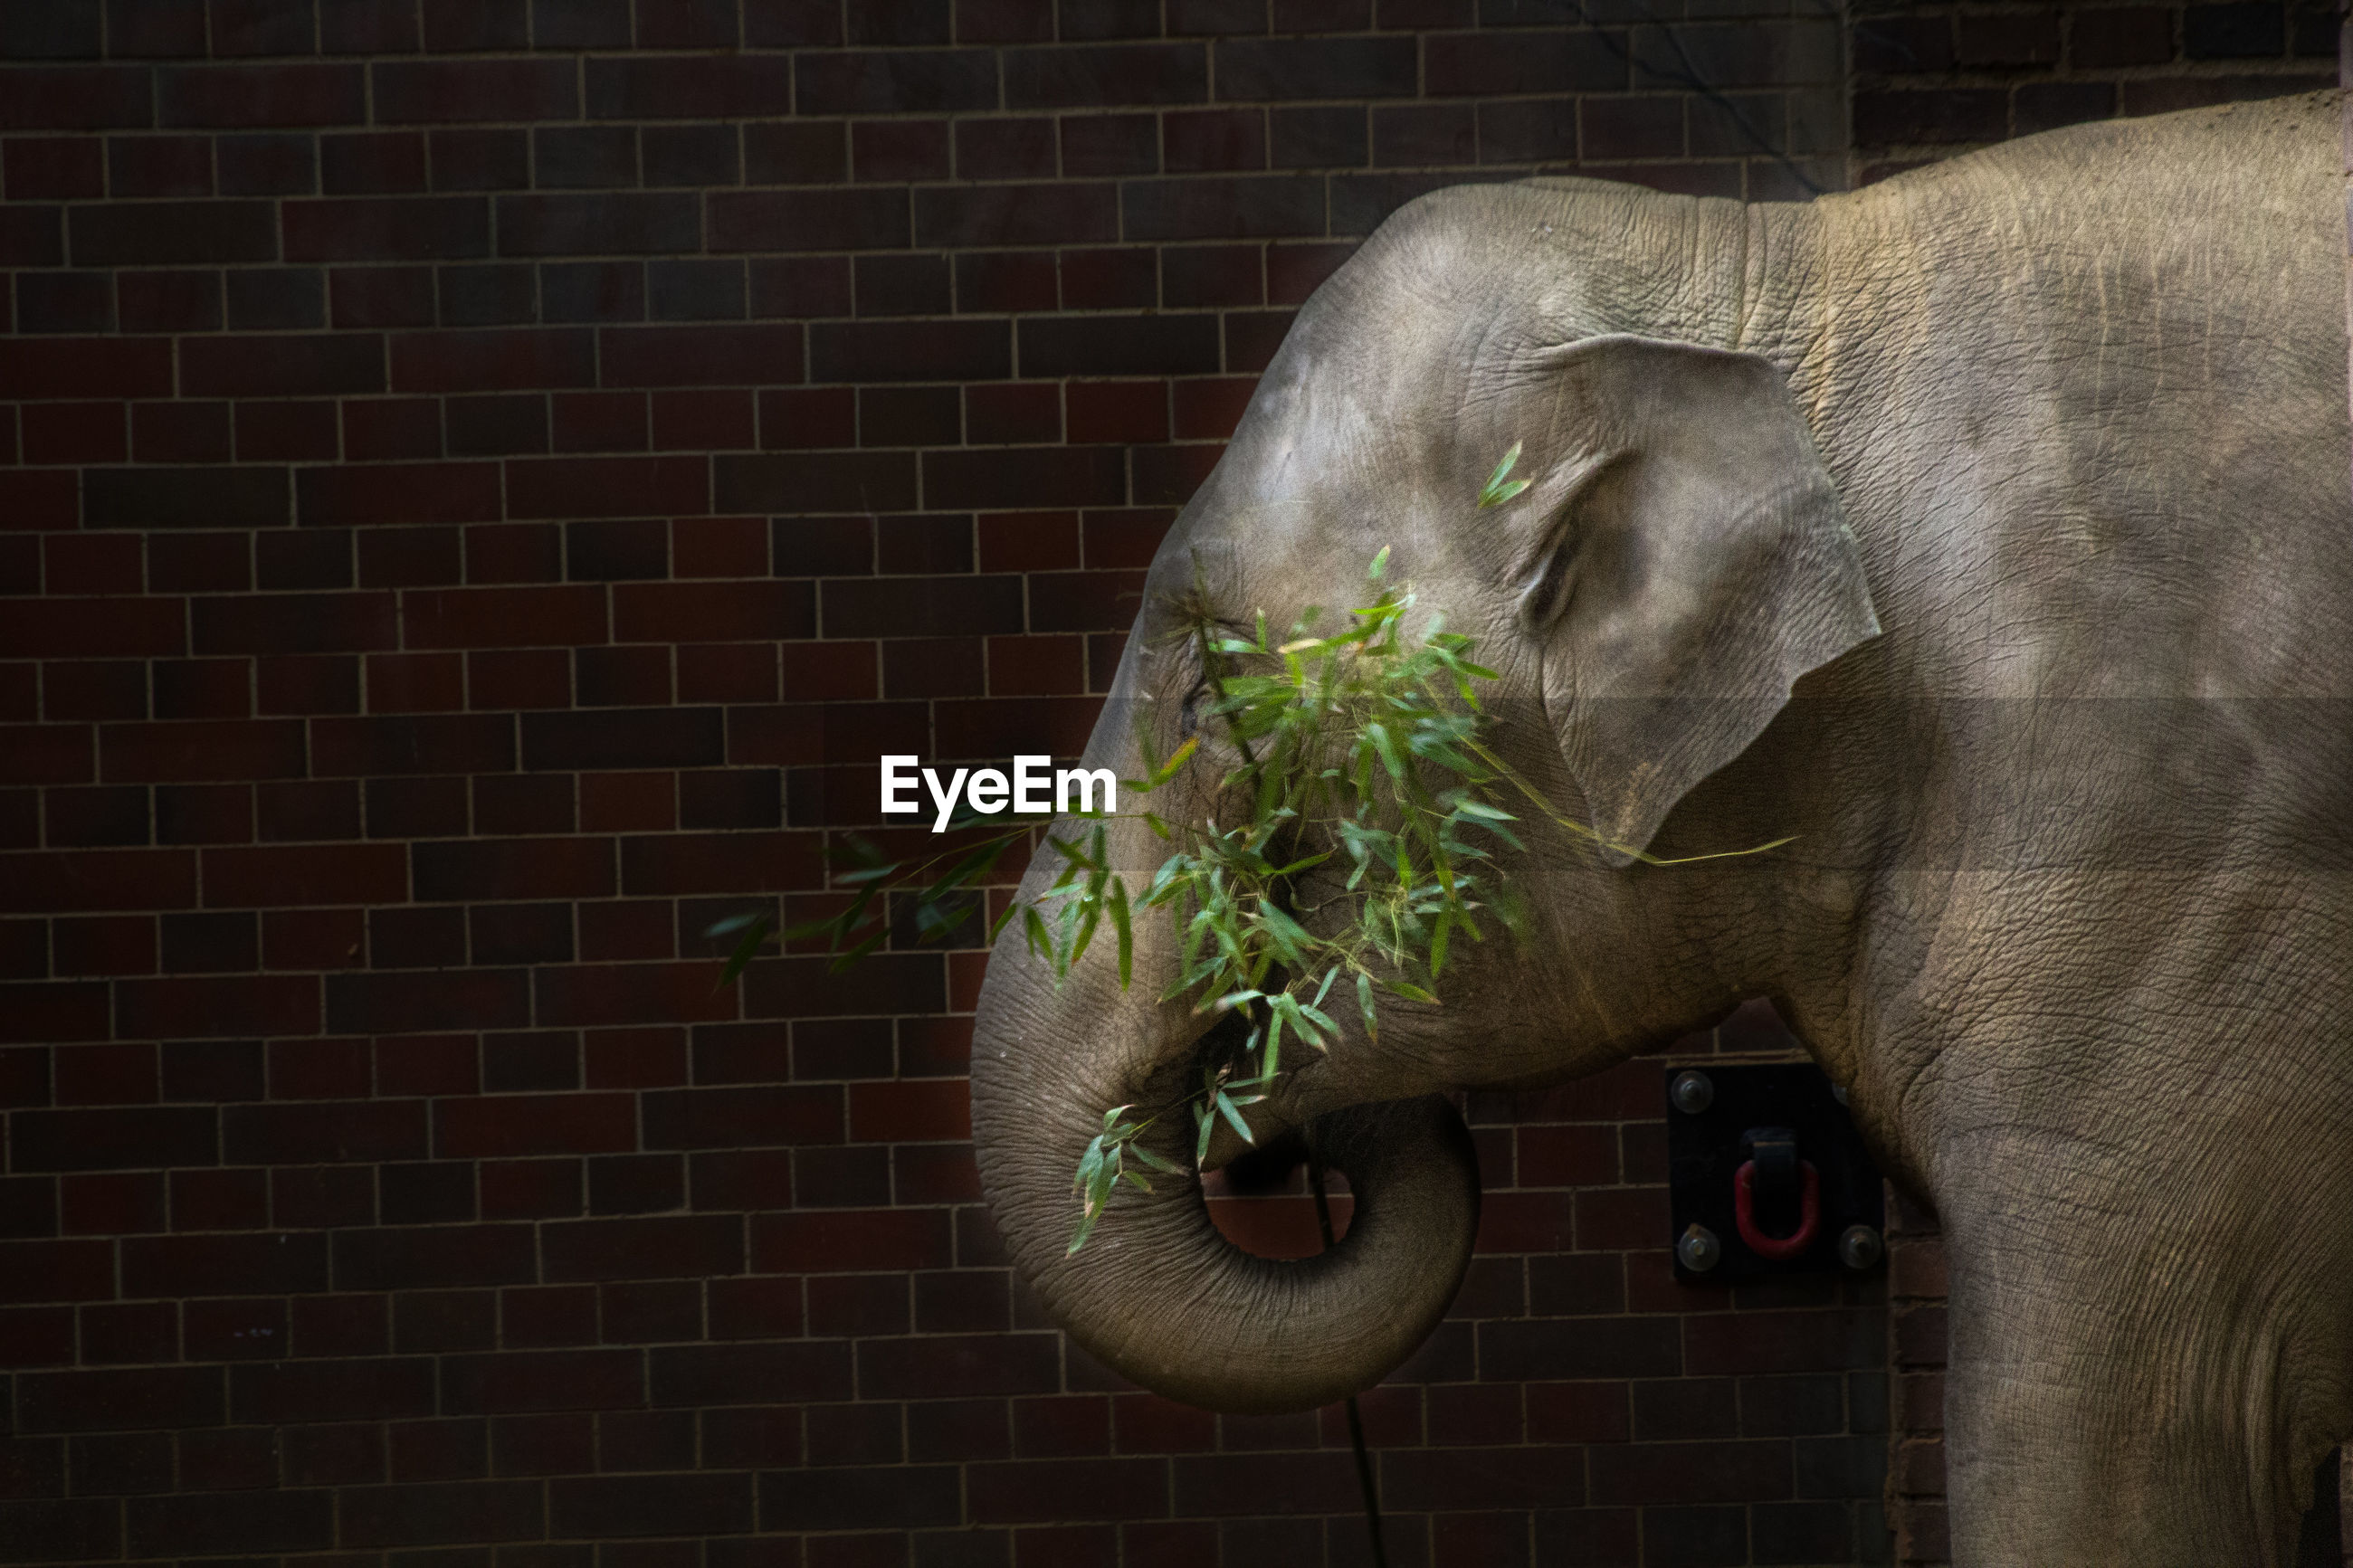 SIDE VIEW OF ELEPHANT IN WALL